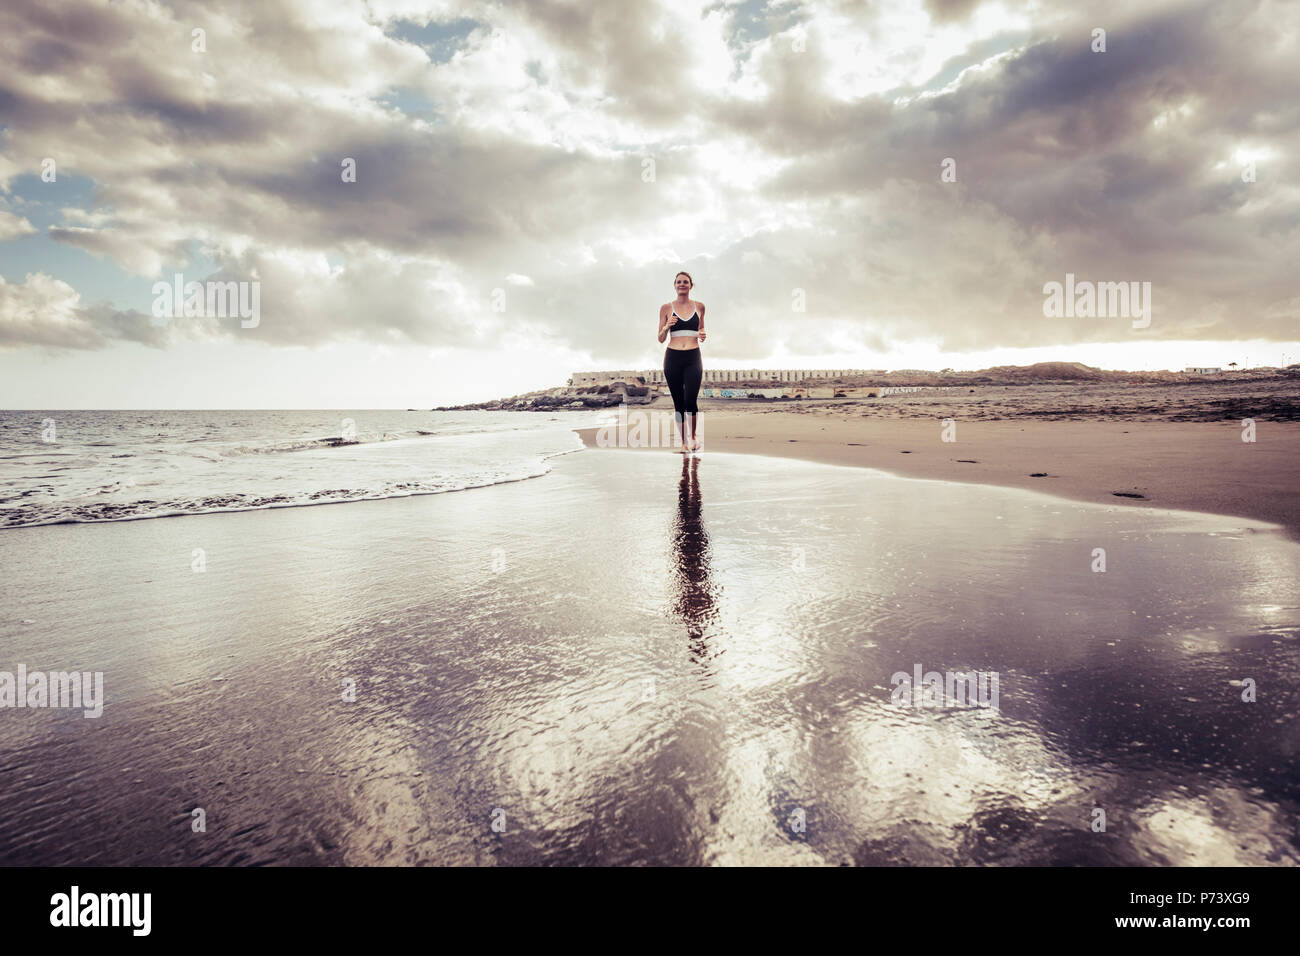 lonely runner lady young caucasian girl at the beach in barefoot style running on the shore. waves and ocean sport activity concept. amazing sunset an - Stock Image